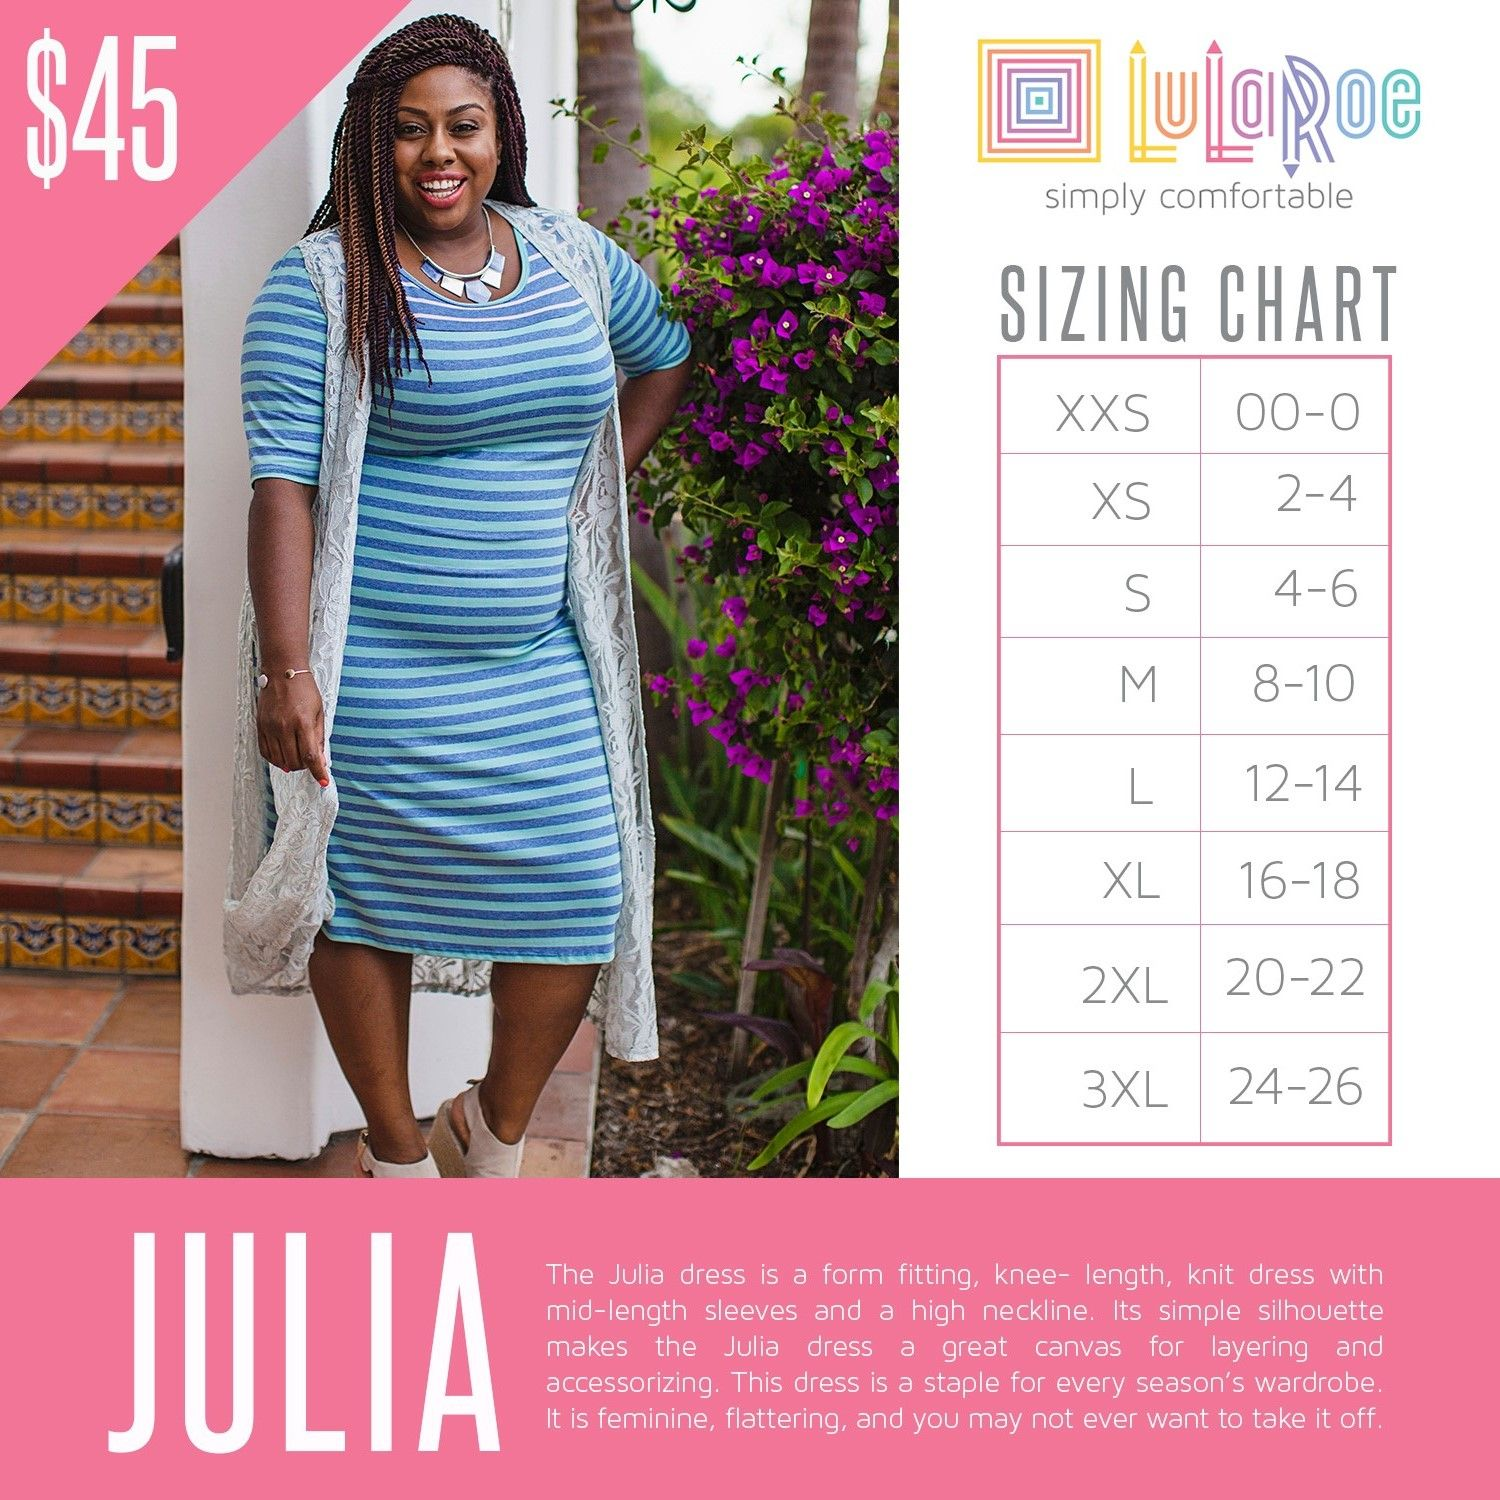 Lularoe julia sizing chart with price also size charts rh pinterest